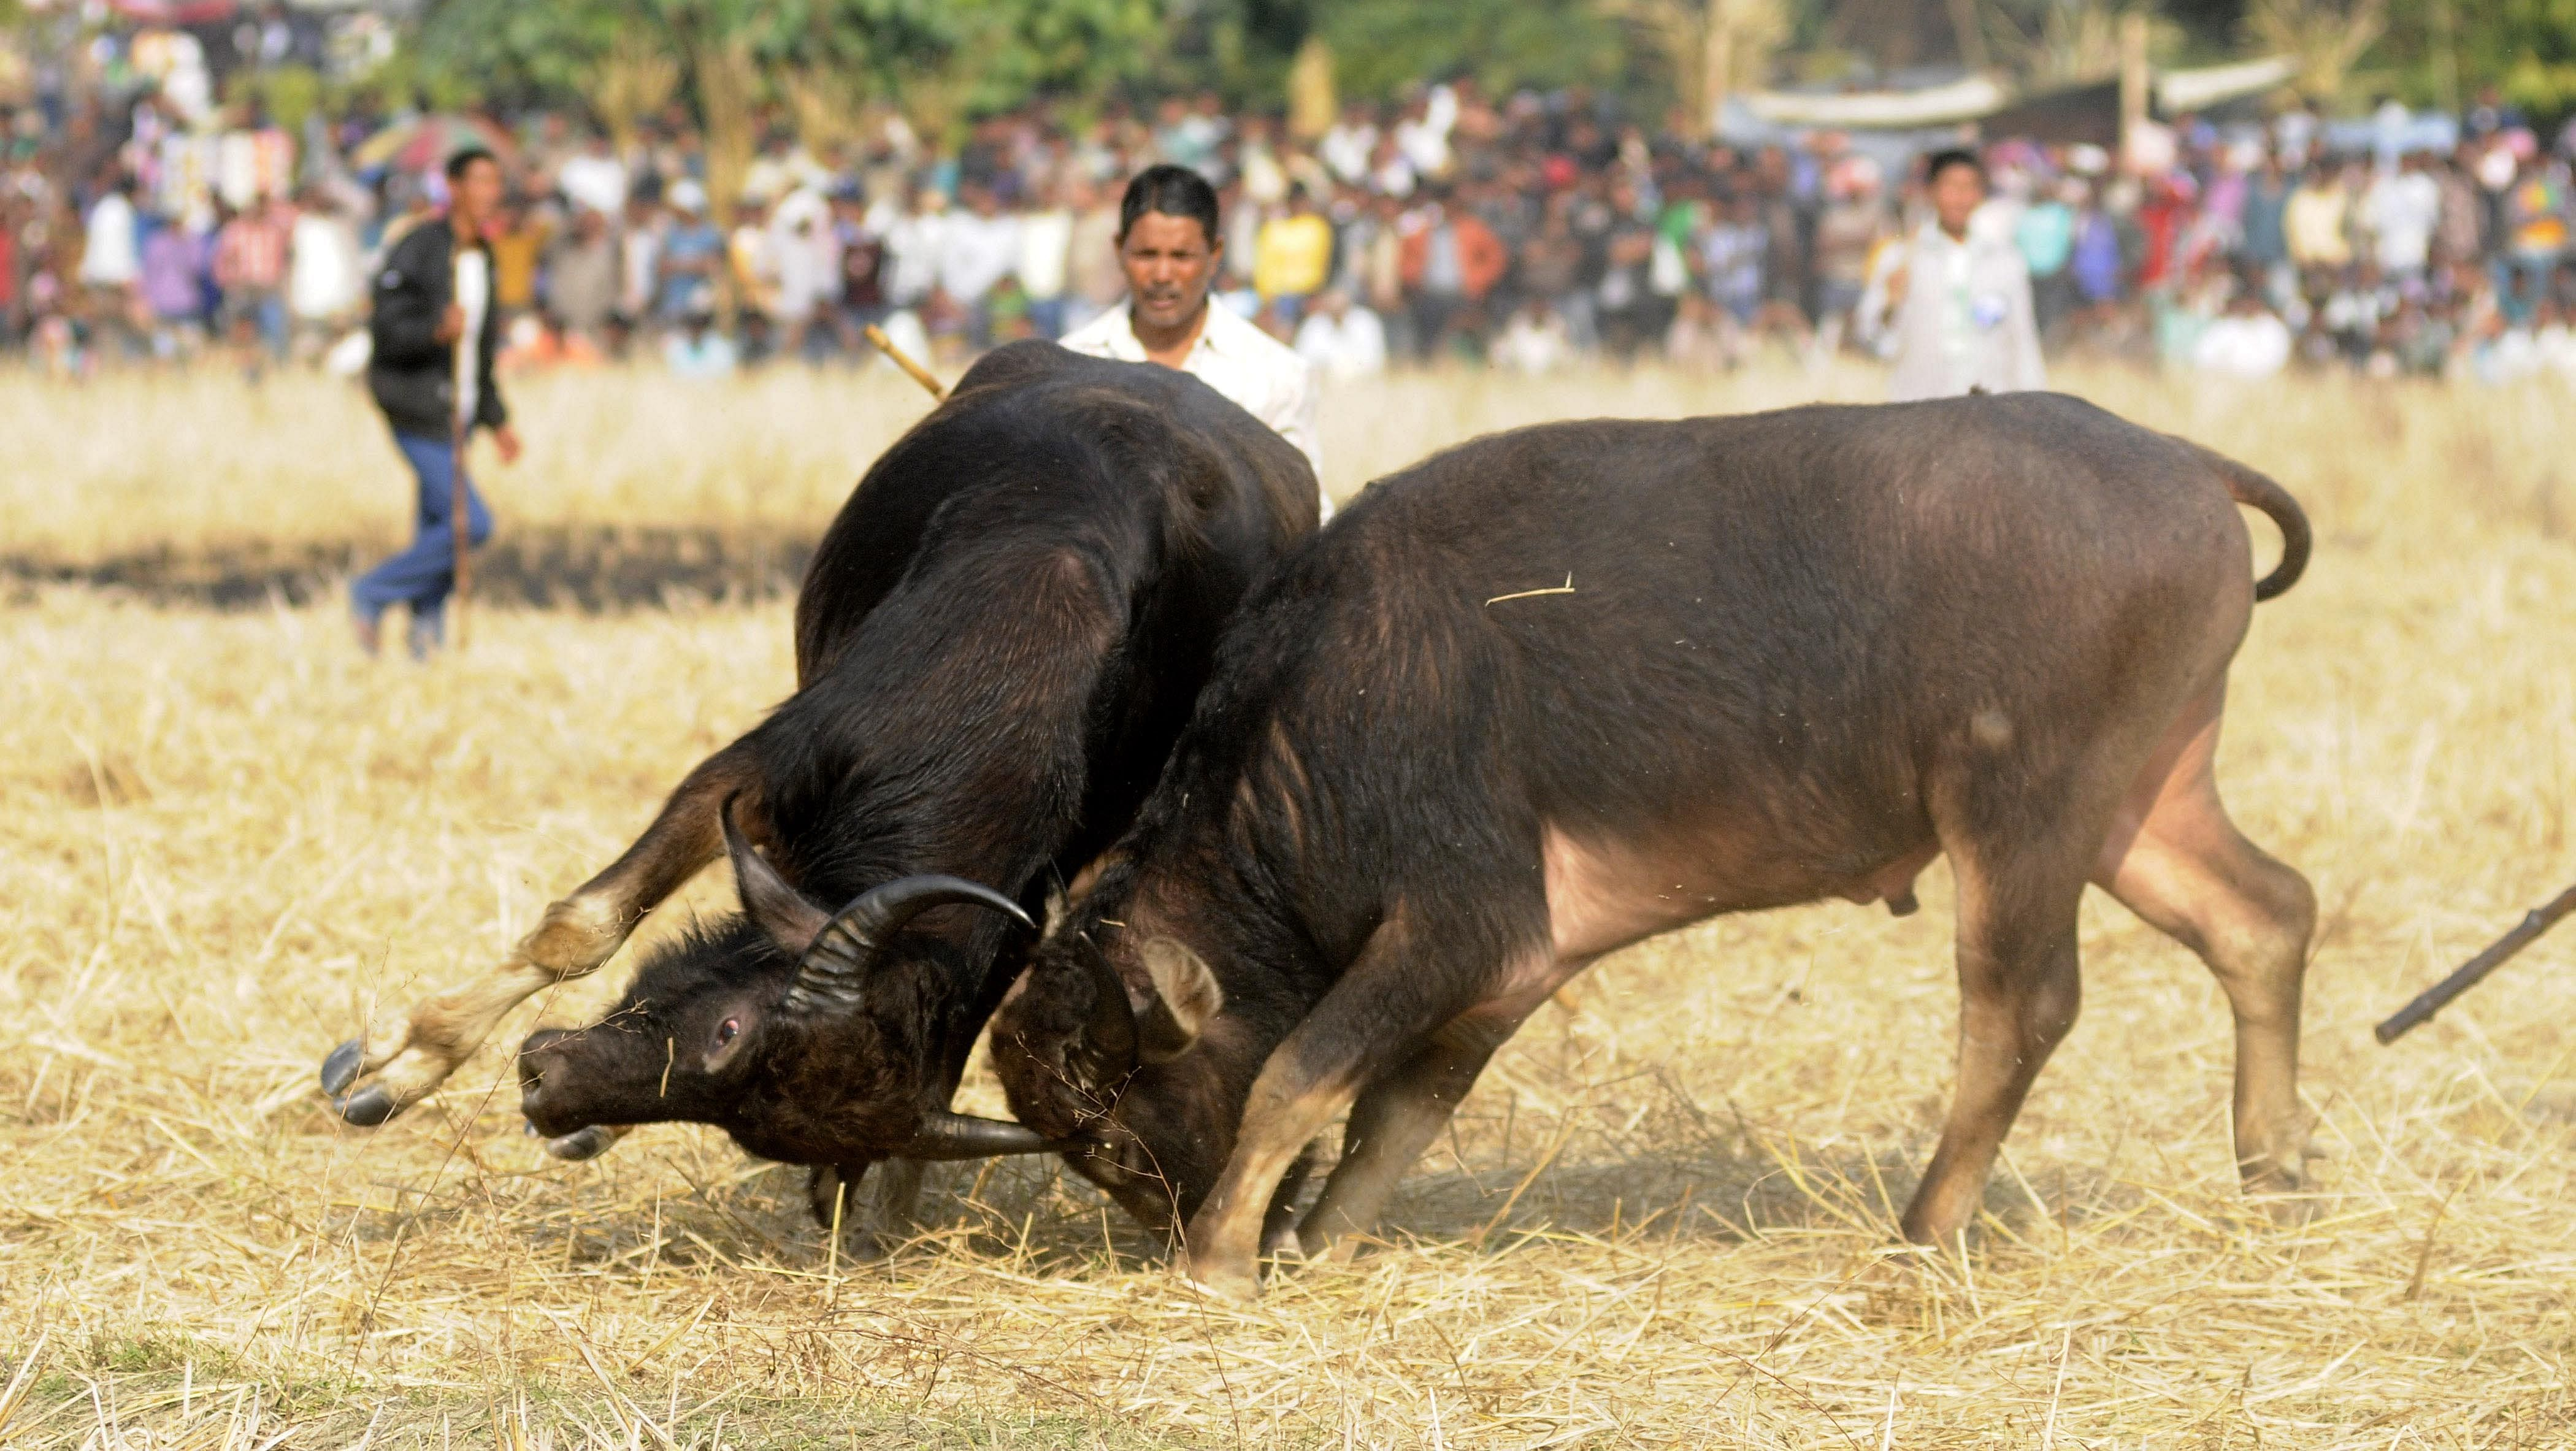 Indians watch a traditional buffalo fight in progress at Ahatguri, some 80 kms away from Guwahati, the capital city of India's northeastern state of Assam on 15 January 2014. The age-old buffalo fight is organised on the occasion of the harvest festival 'Bhogali Bihu' in Assam.